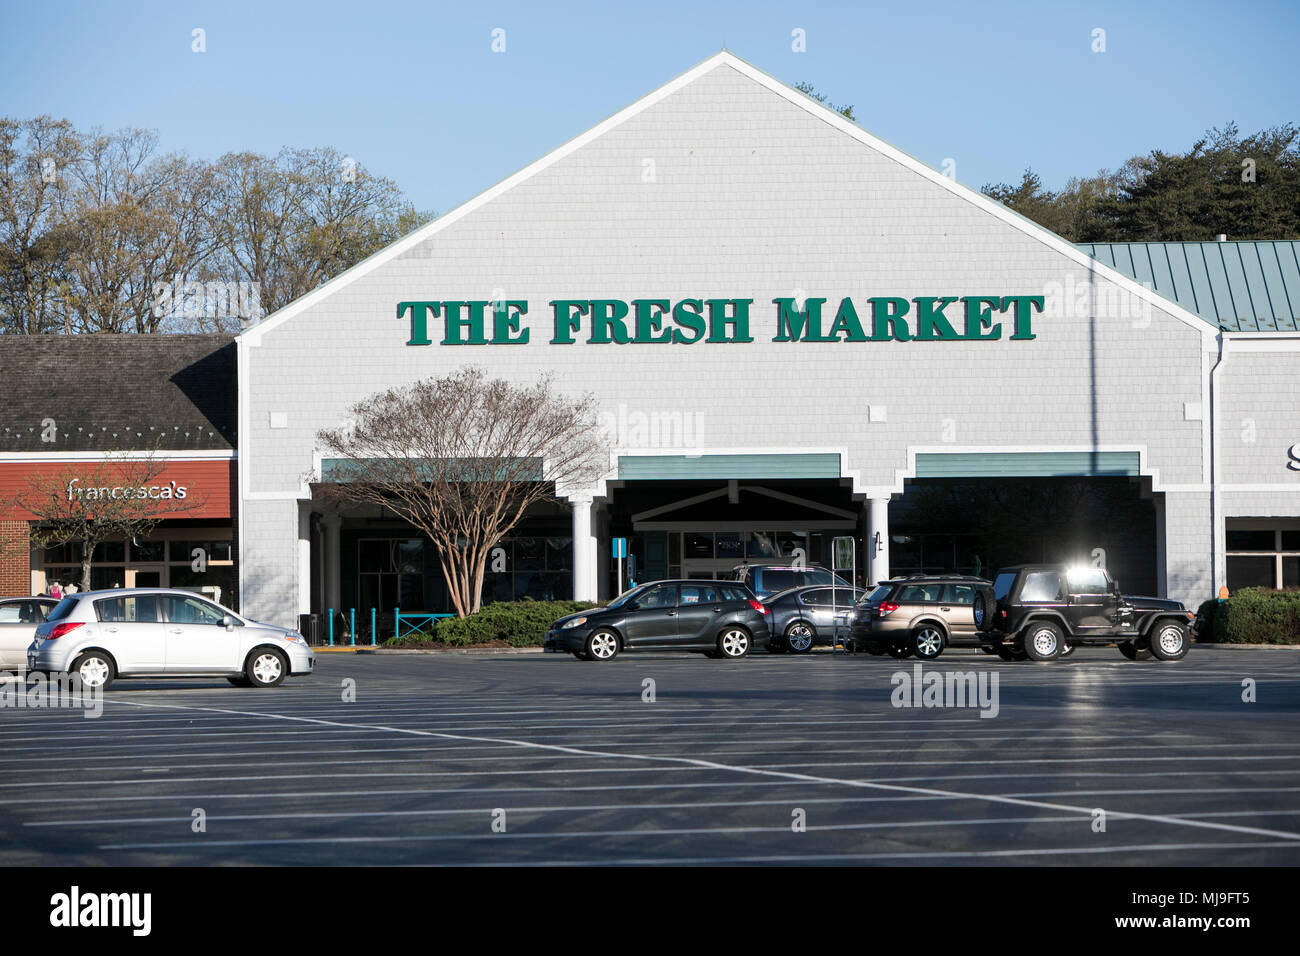 A logo sign outside of a The Fresh Market retail grocery store in Annapolis, Maryland on April 29, 2018. - Stock Image